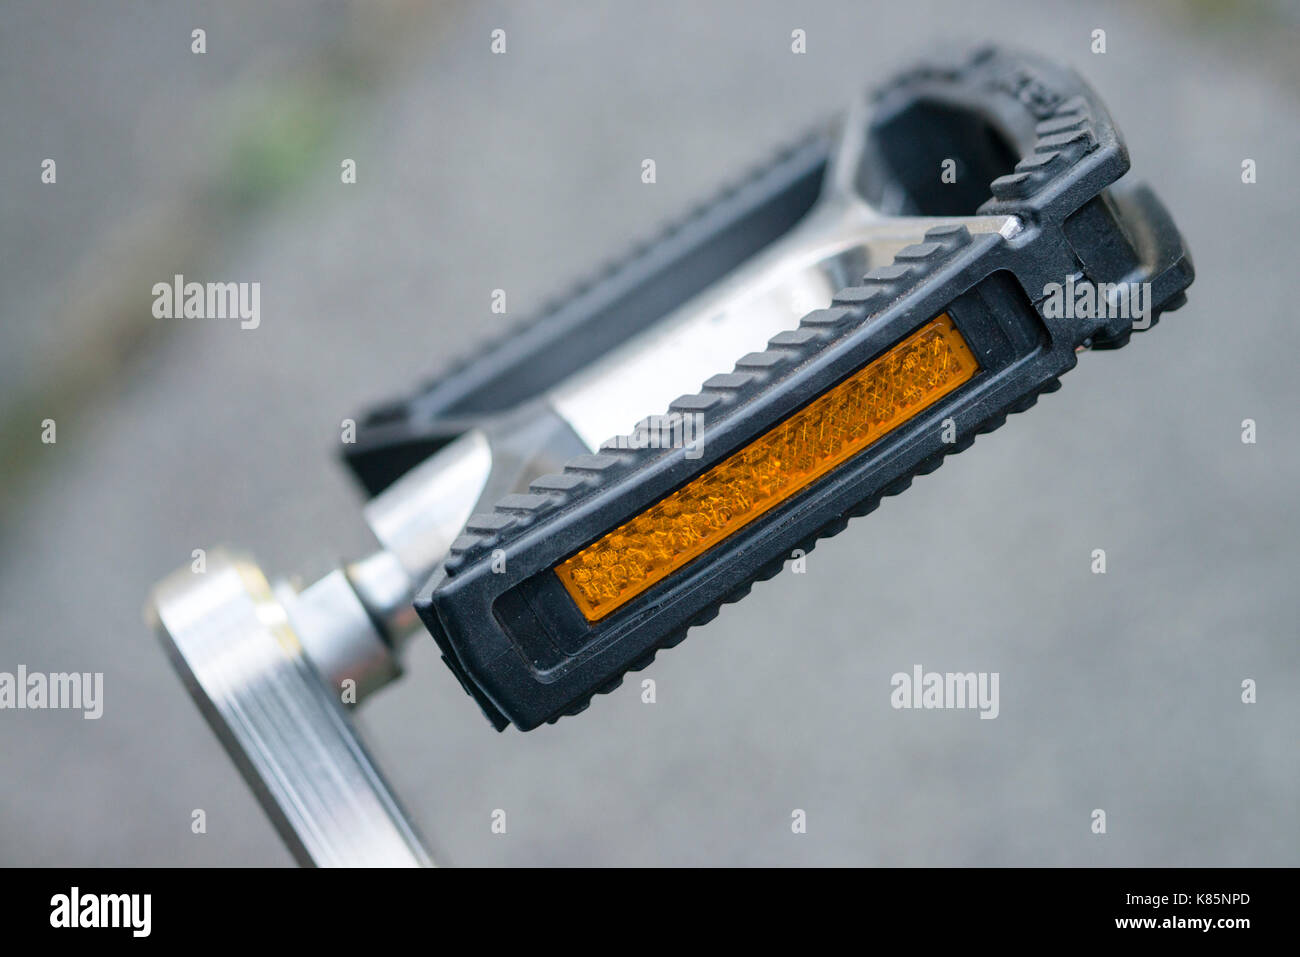 Bicycle pedal close-up - Stock Image